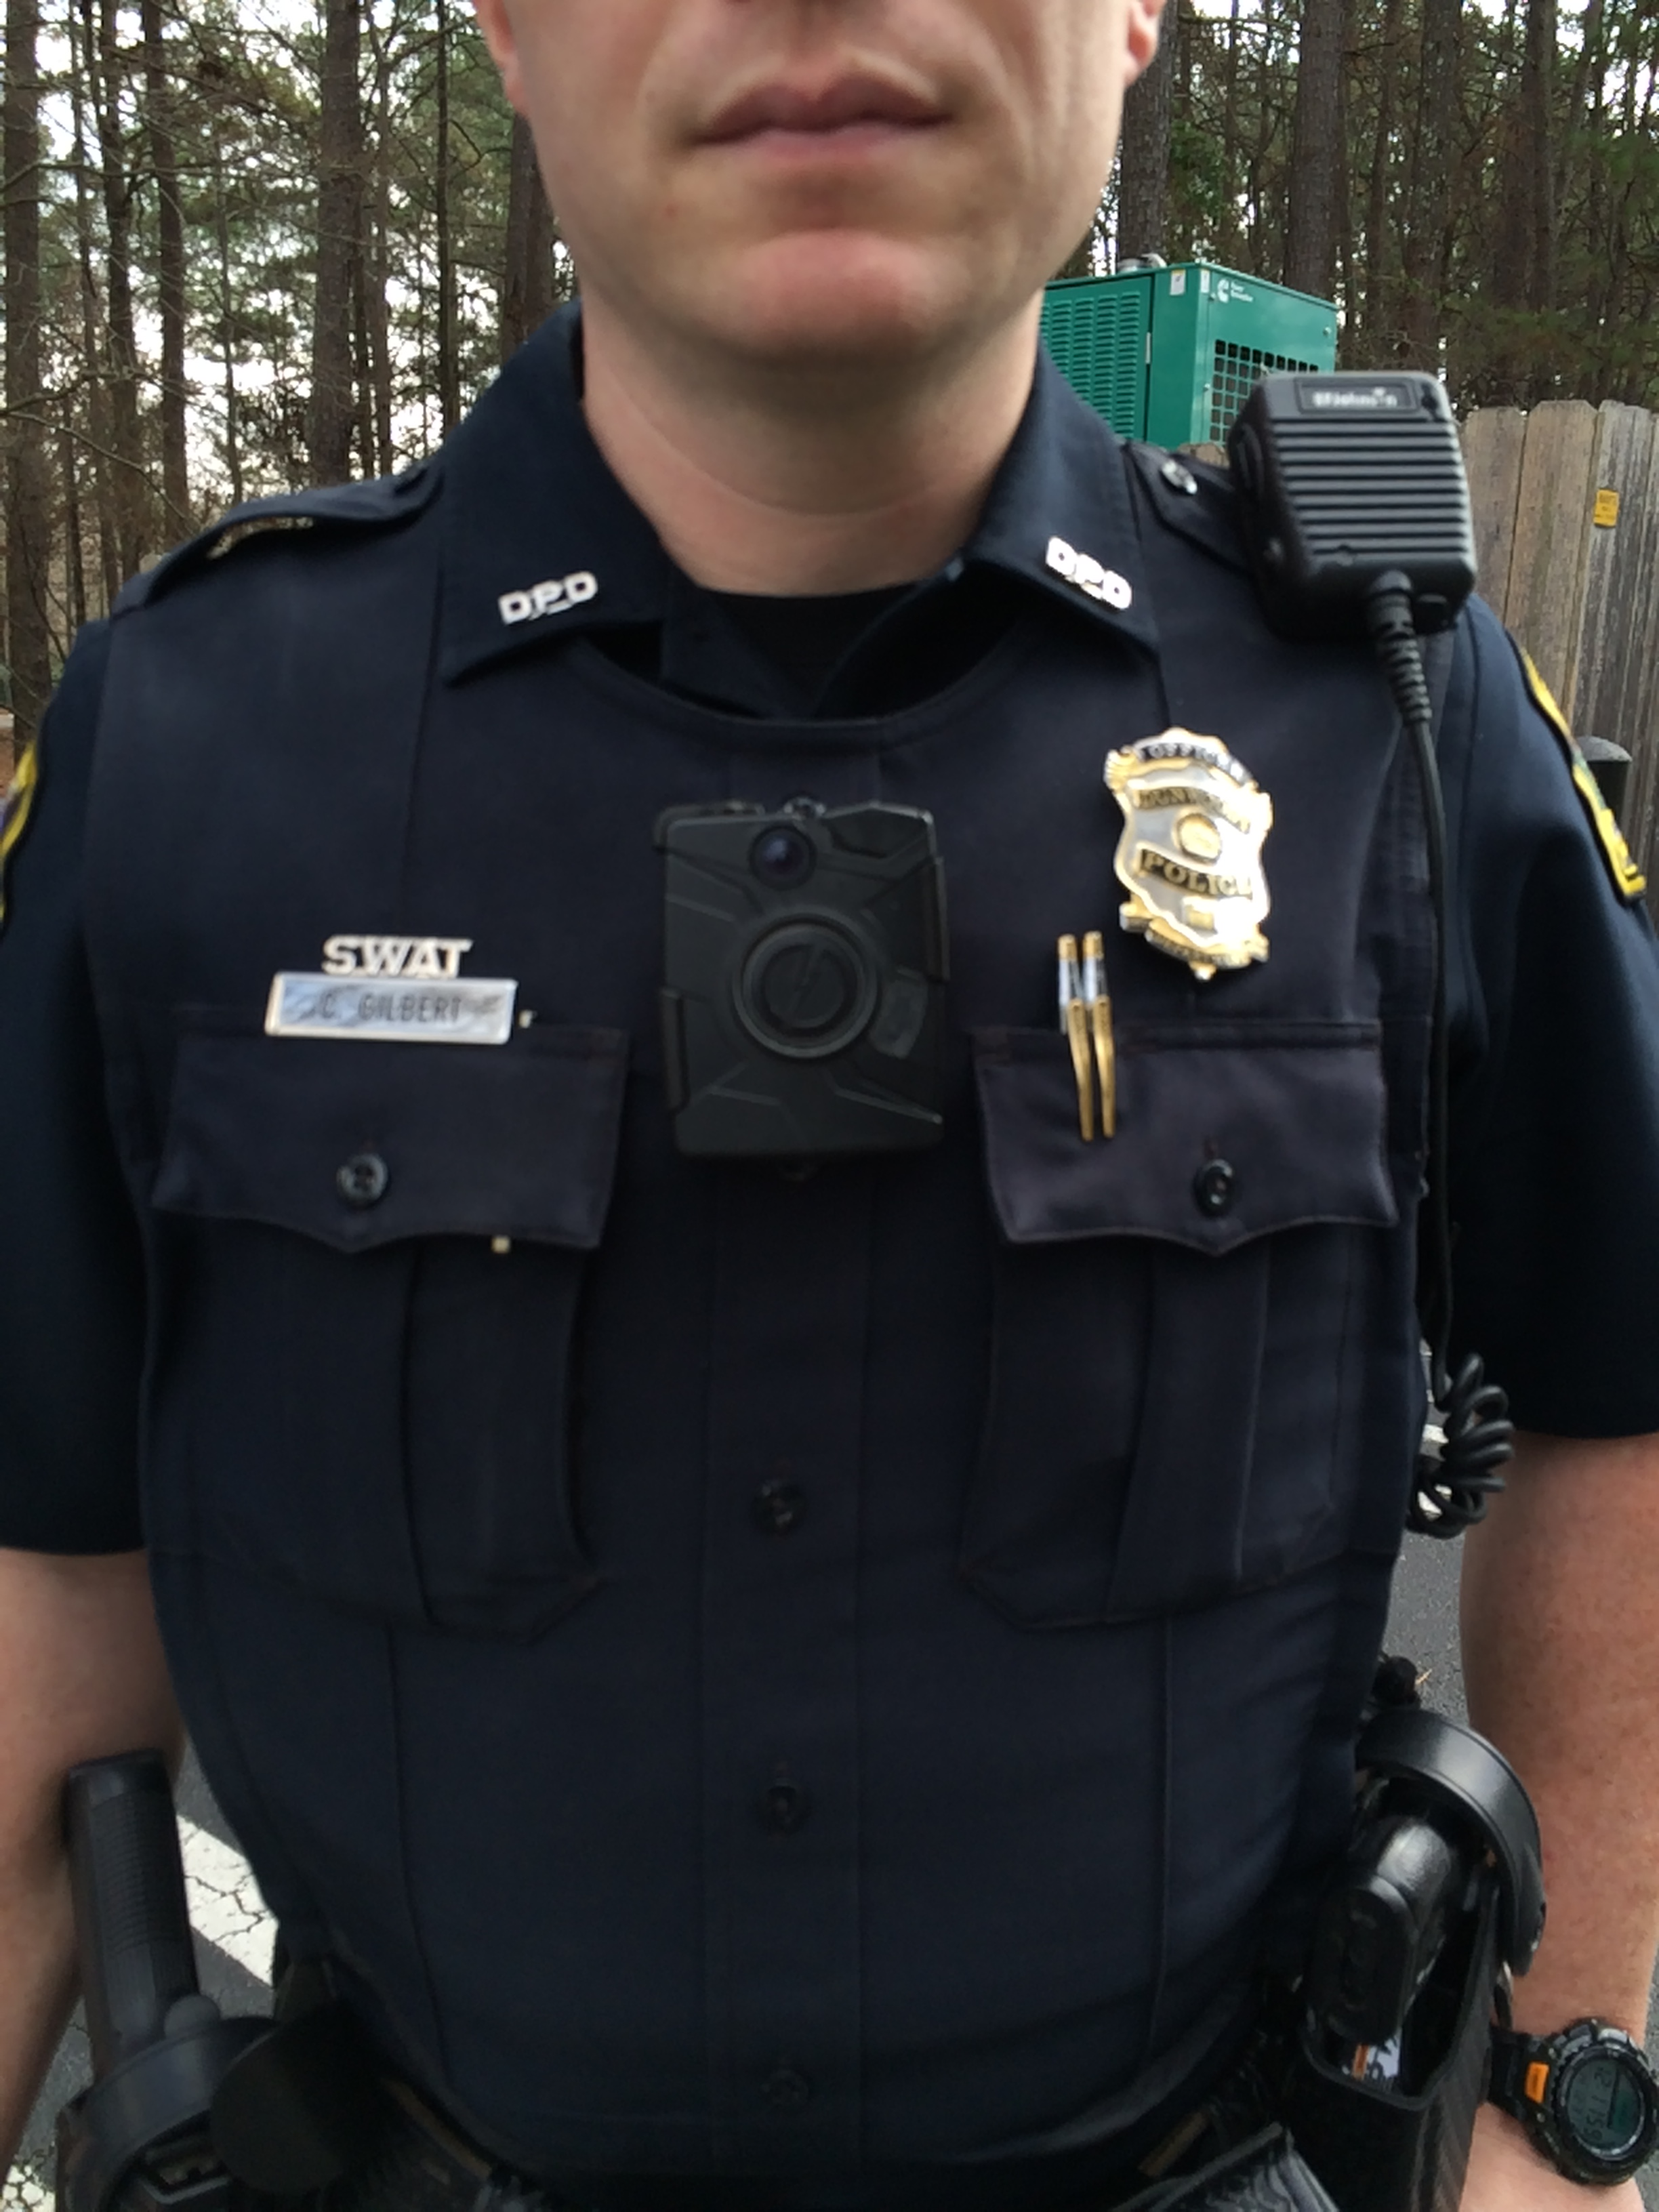 Dunwoody Police Chief says all officers wear body cameras, 'most ...